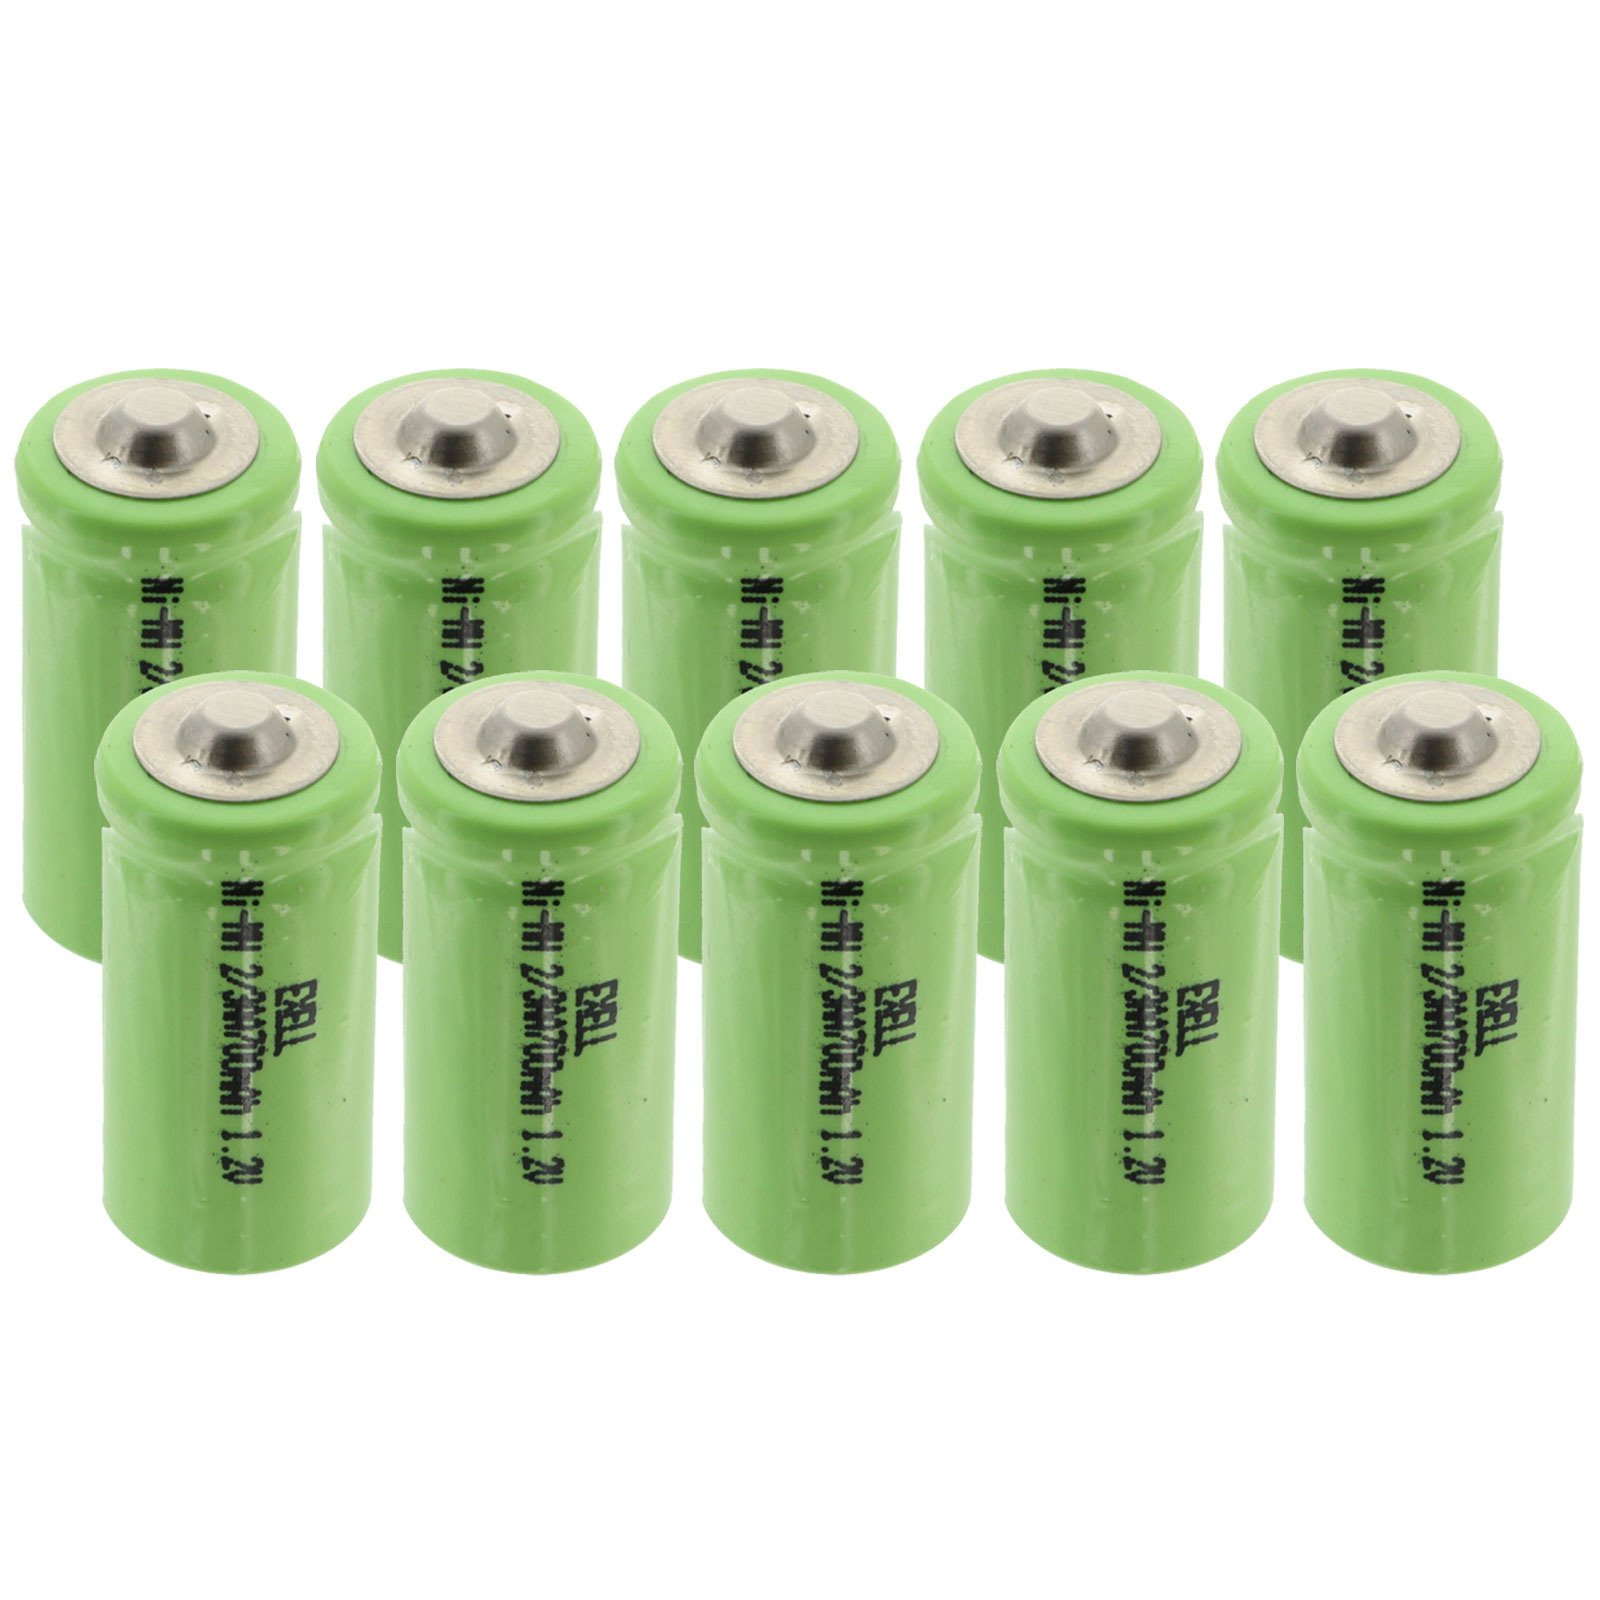 10x Exell 1.2V 2/3AA Size 700mAh NiMH Rechargeable Button Top Batteries use with high power static applications (Telecoms UPS and Smart grid) radio controlled devices electric tools electric mopeds by Exell Battery